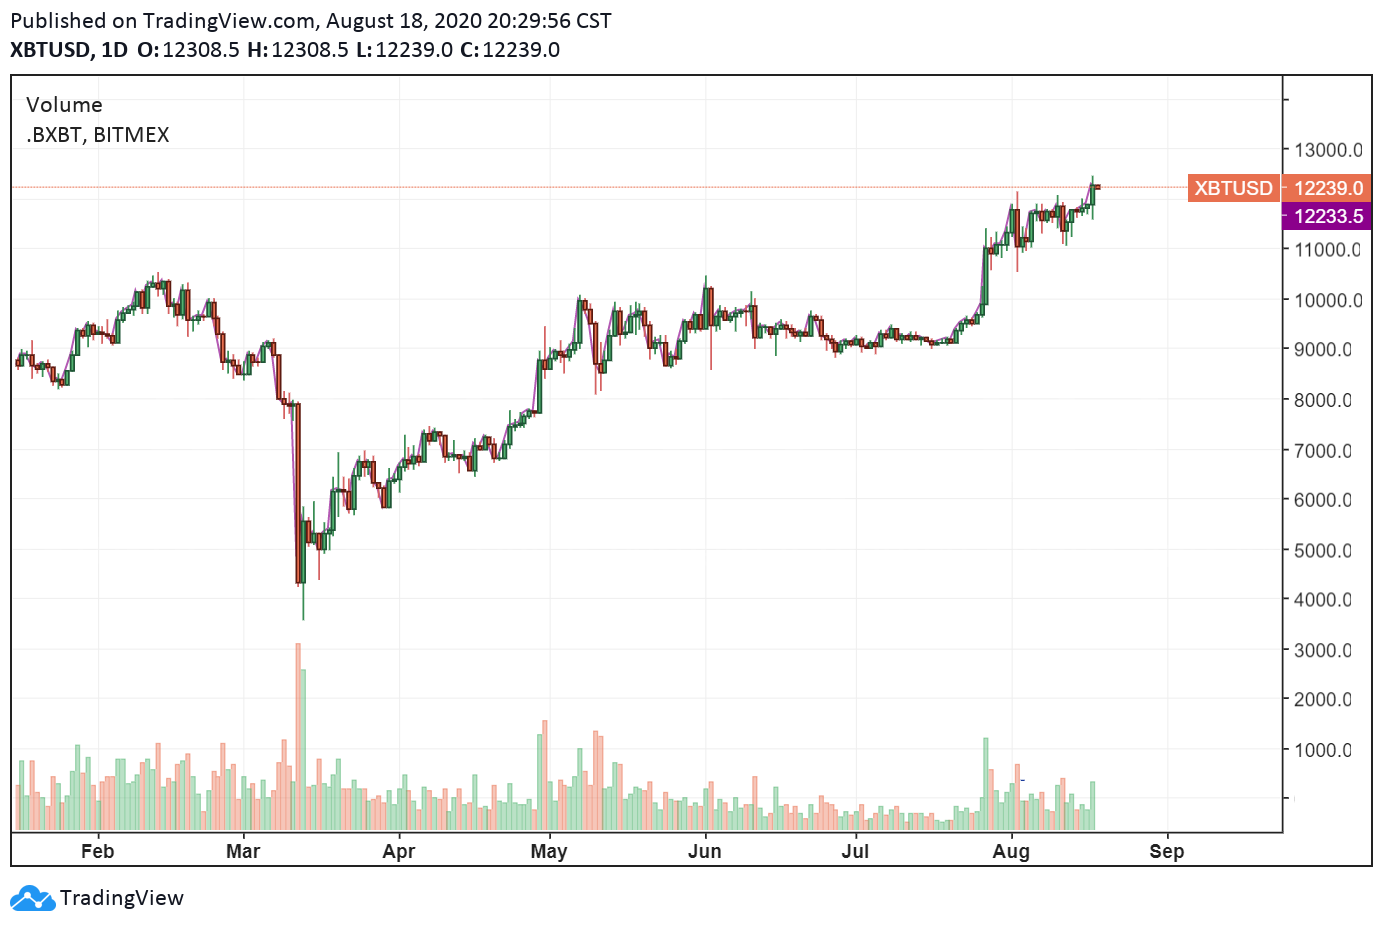 The daily price chart of Bitcoin